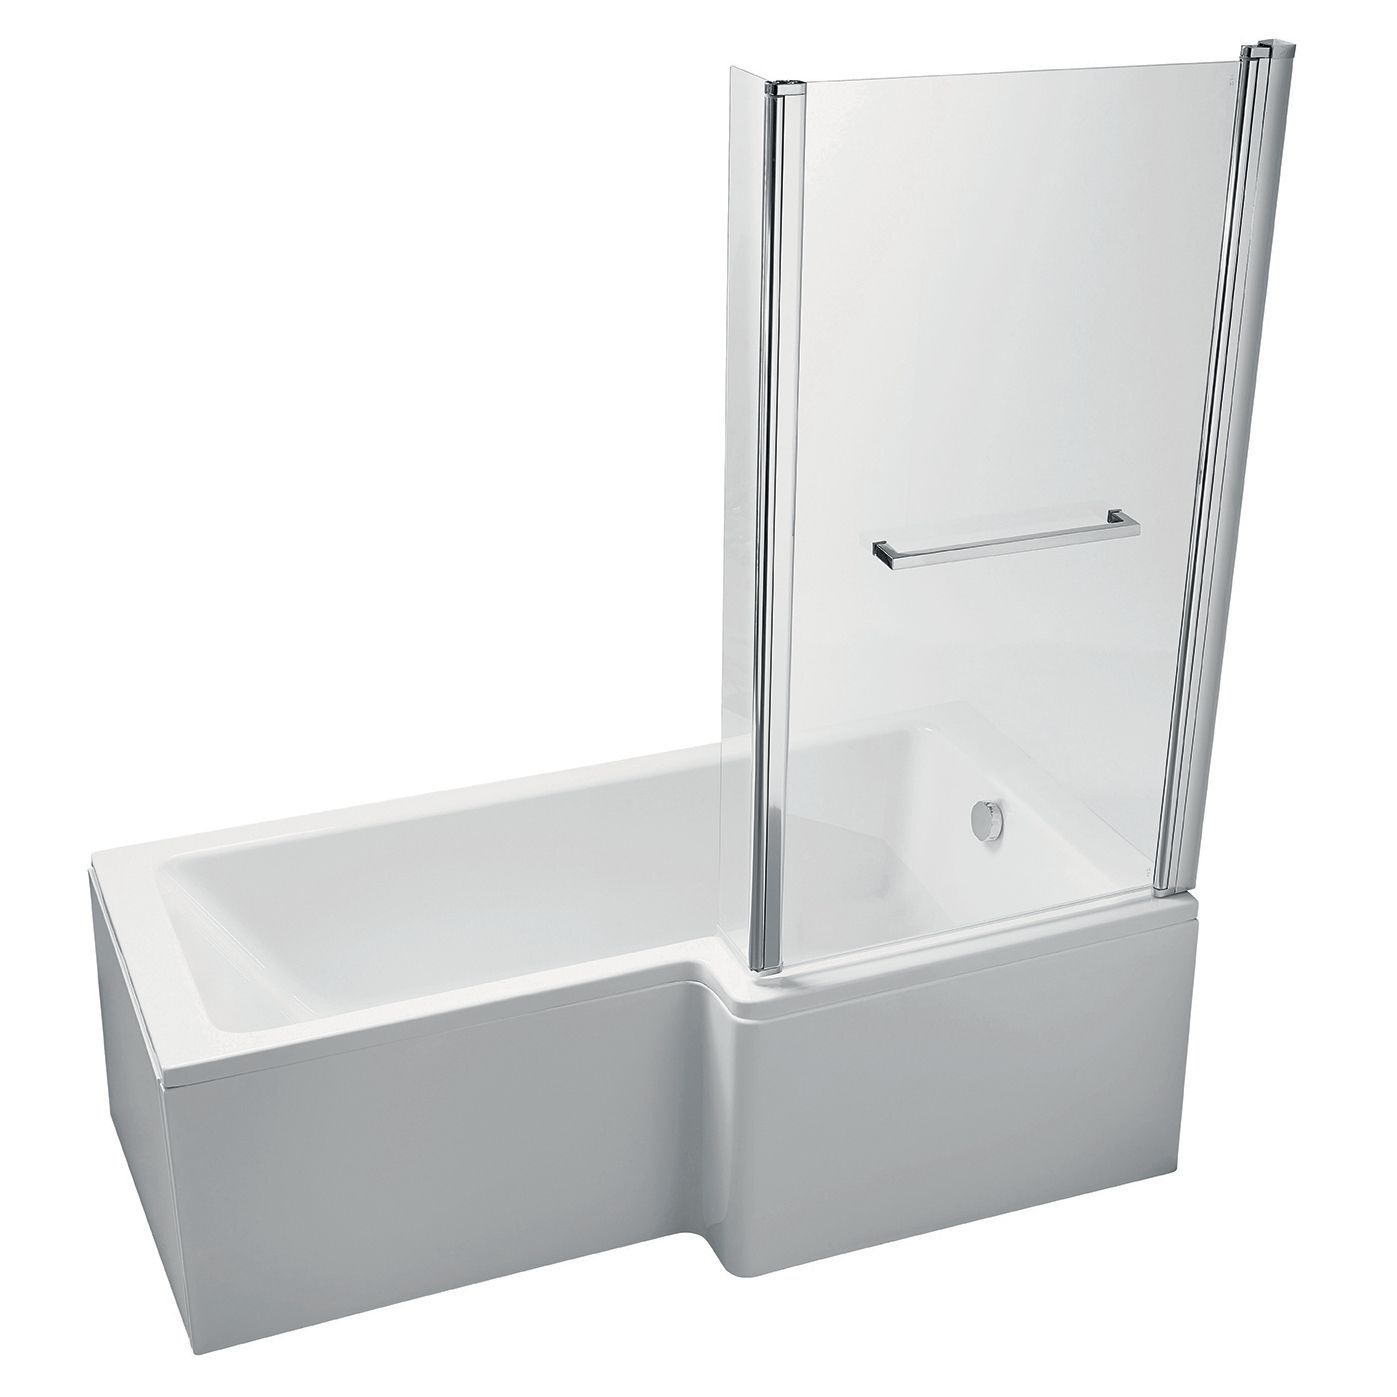 Ideal standard imagine aquablade contemporary close for Rectangular bathroom layout